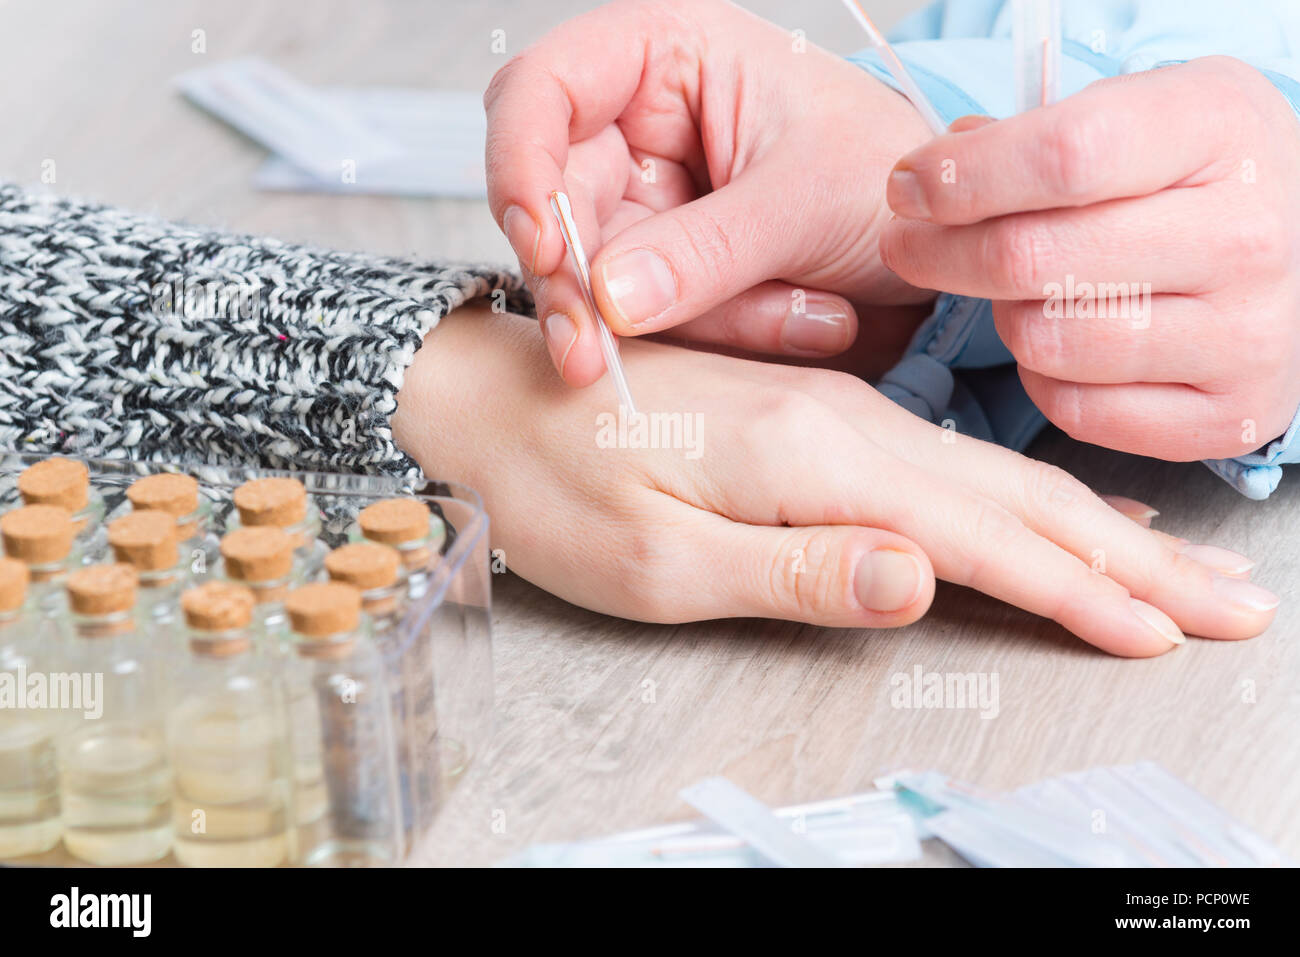 Acupuncture therapist applying acupuncture needle to her client's hand - Stock Image